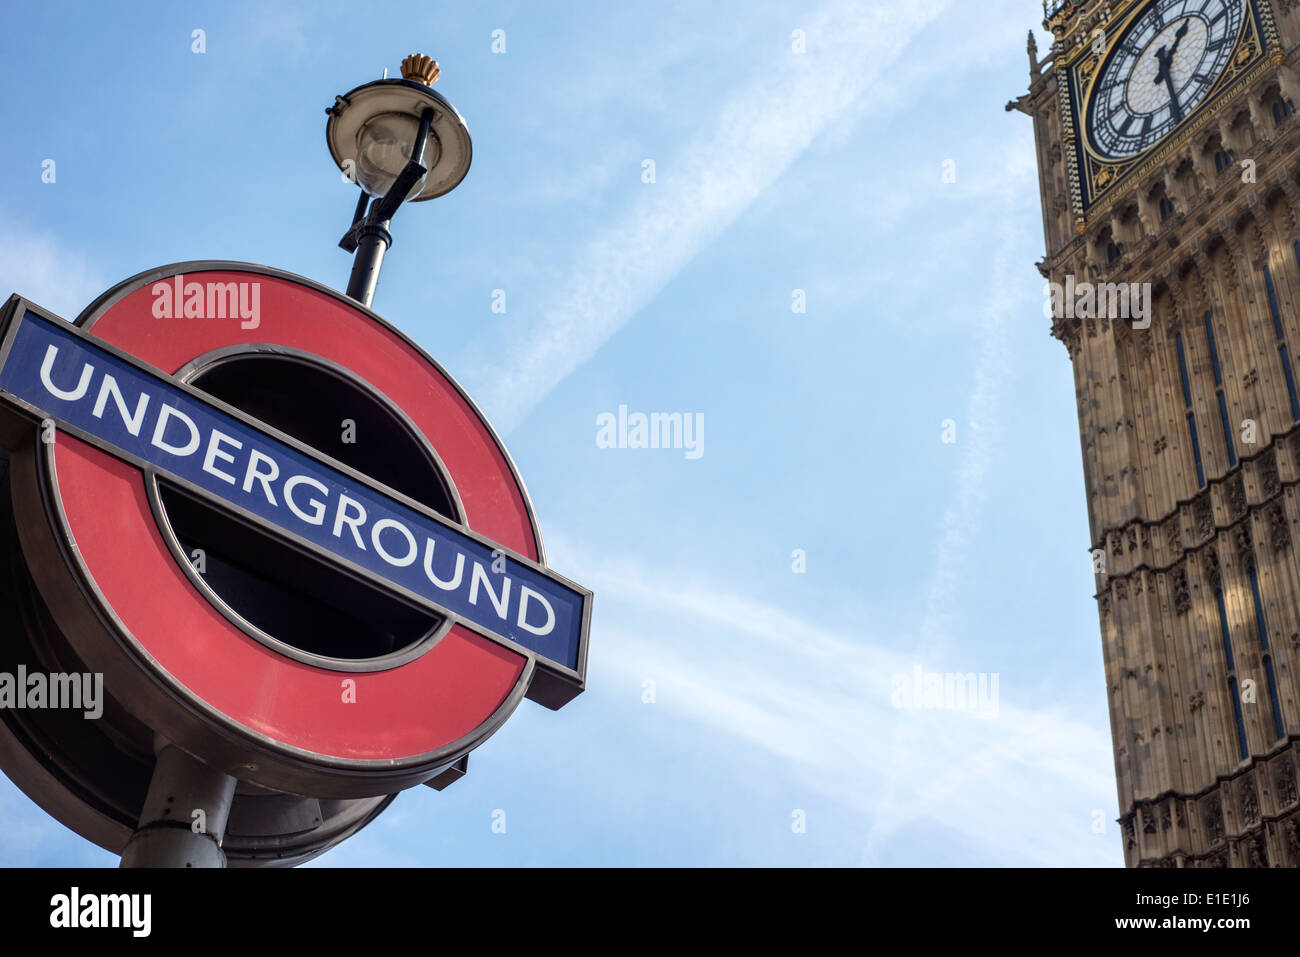 A London tube sign with Big Ben in the background, England, UK, - Stock Image